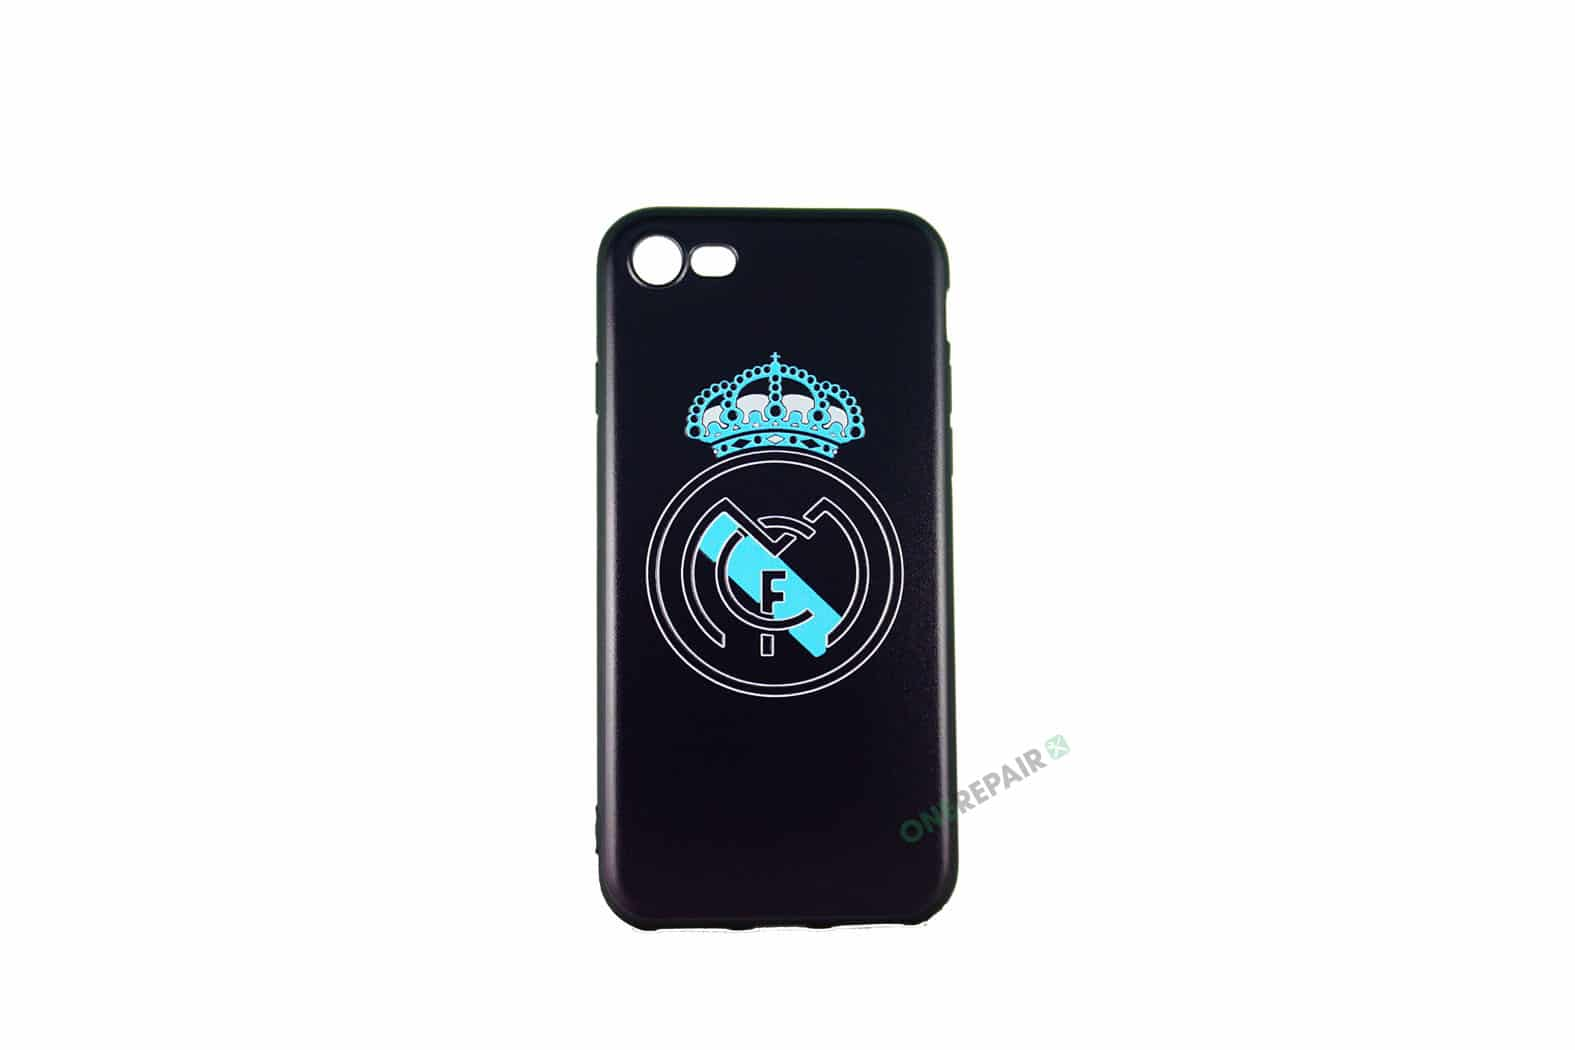 353774_iPhone_78_Fodbold_Real_Madrid_Lysblå_Cover_OneRepair_00001